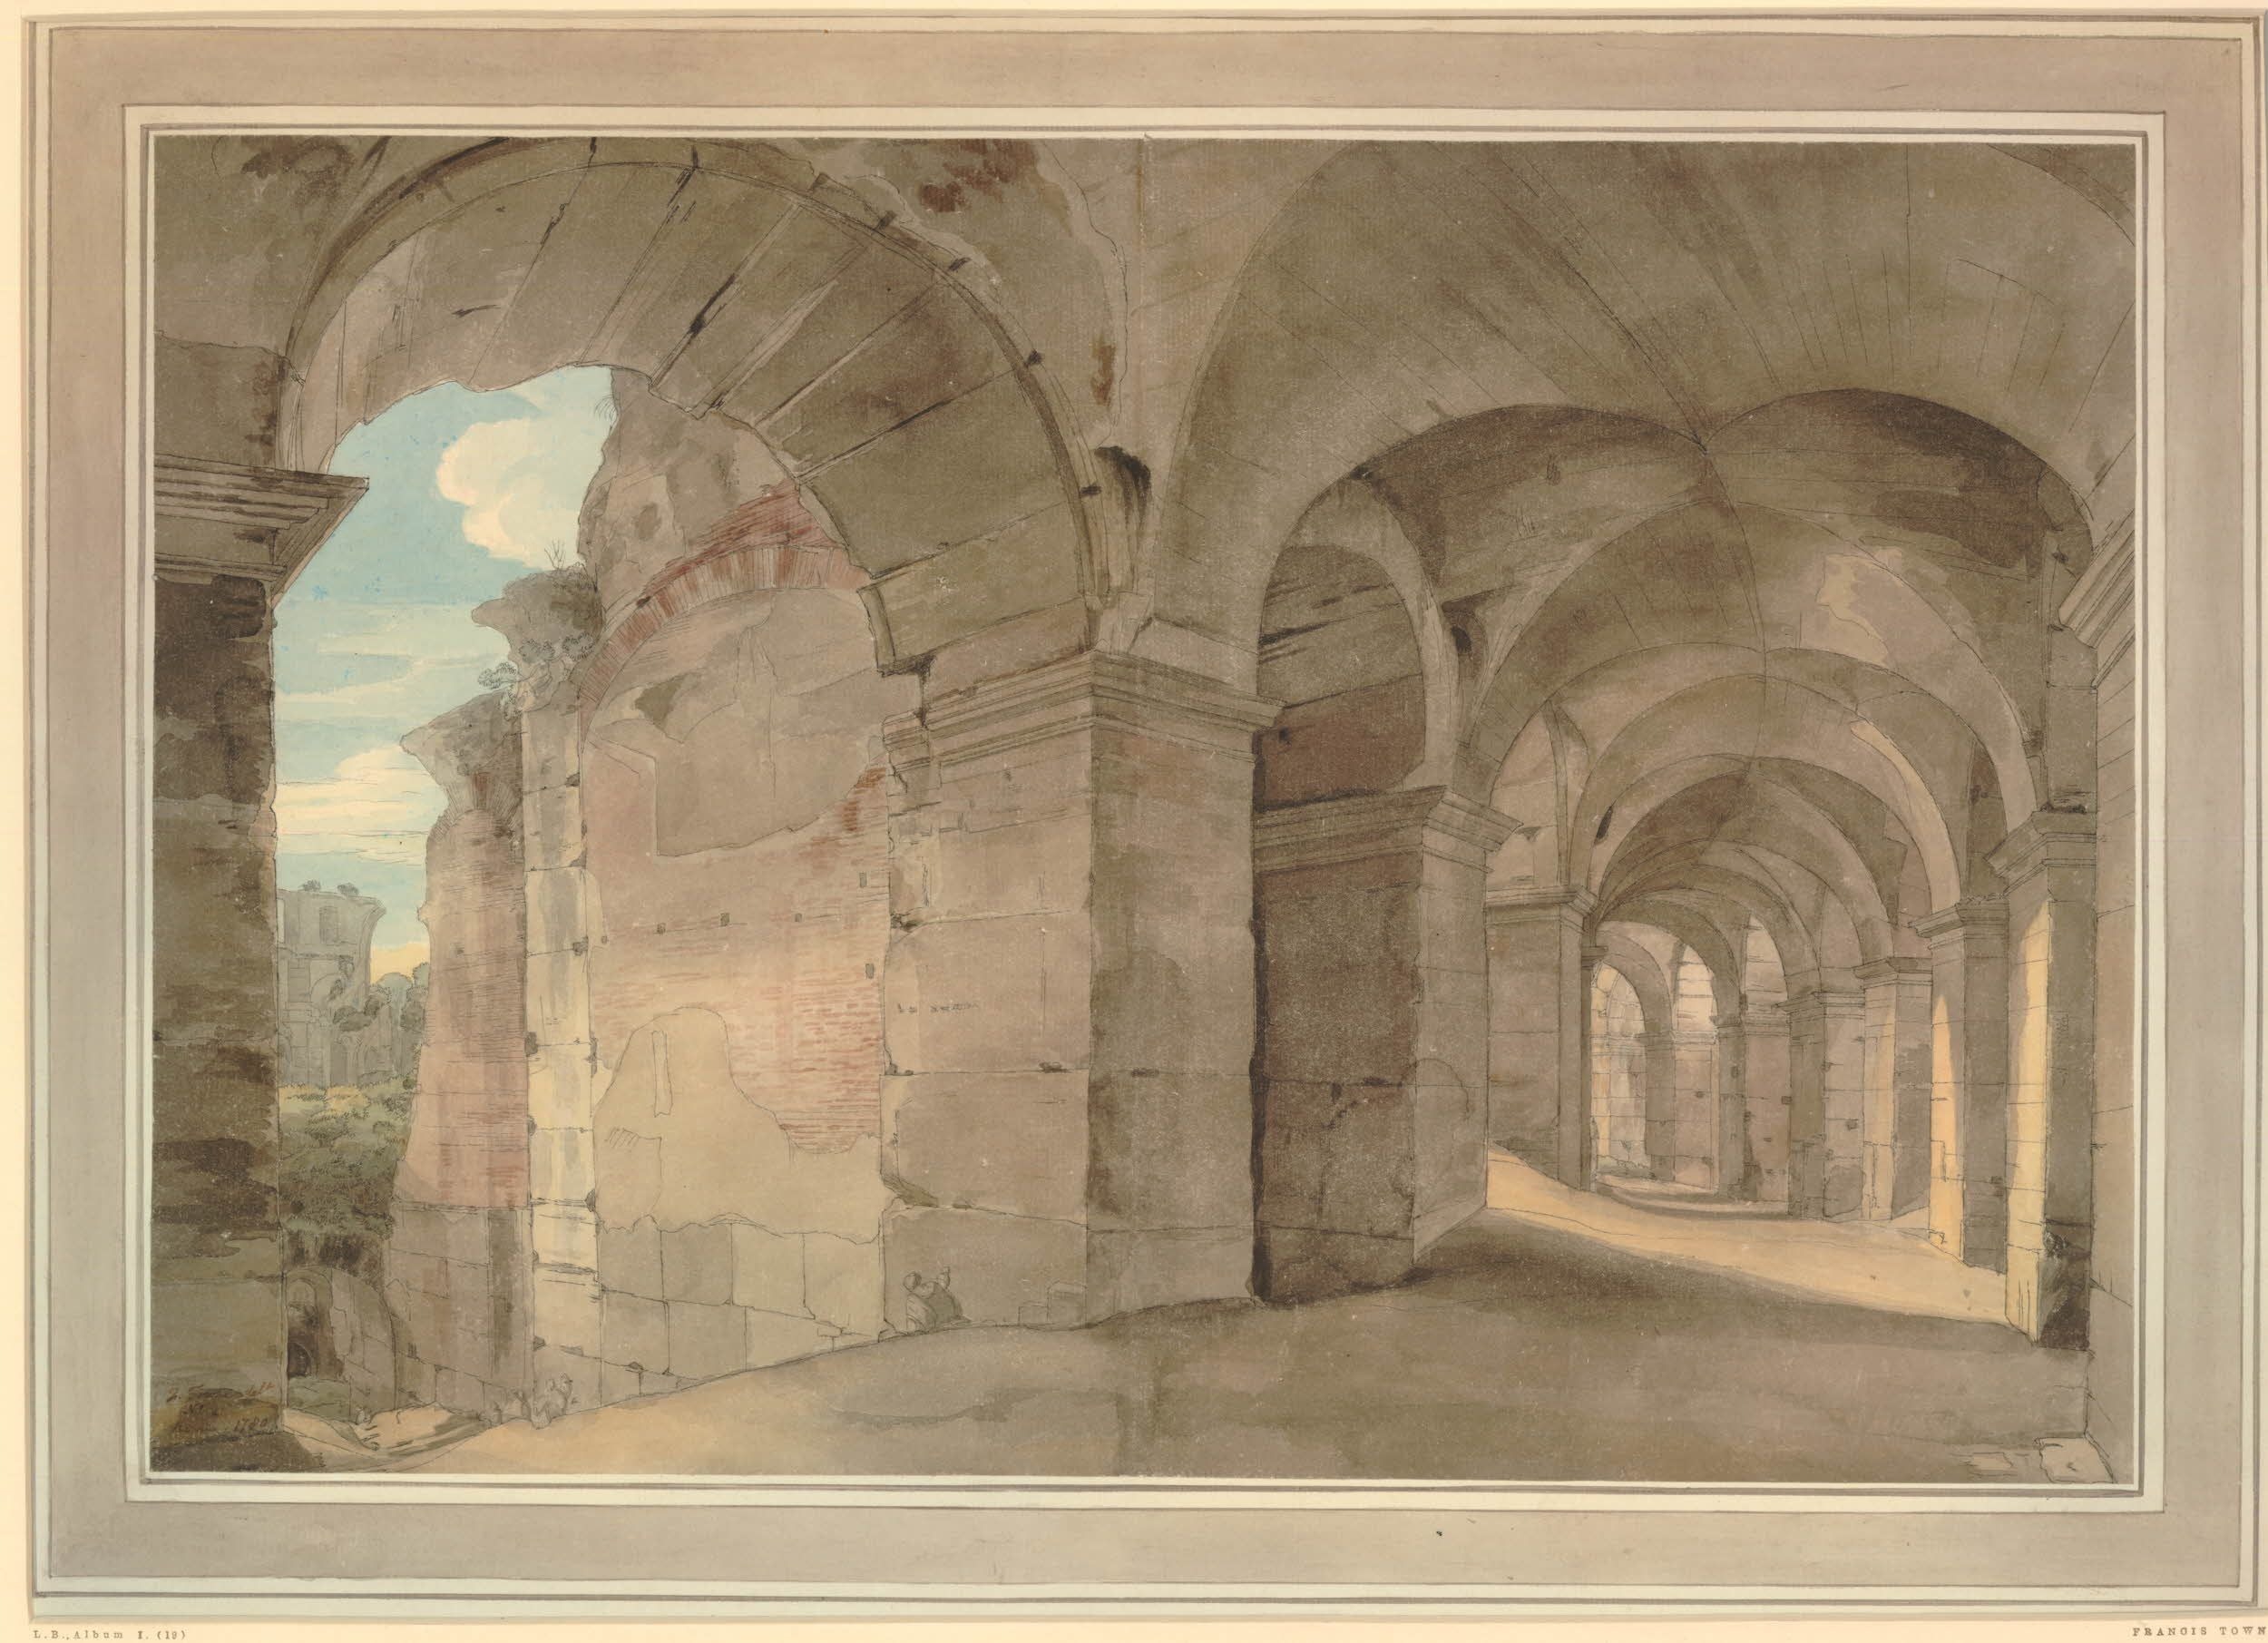 Francis Towne's watercolour of the inside of a gallery of the Colosseum, Rome